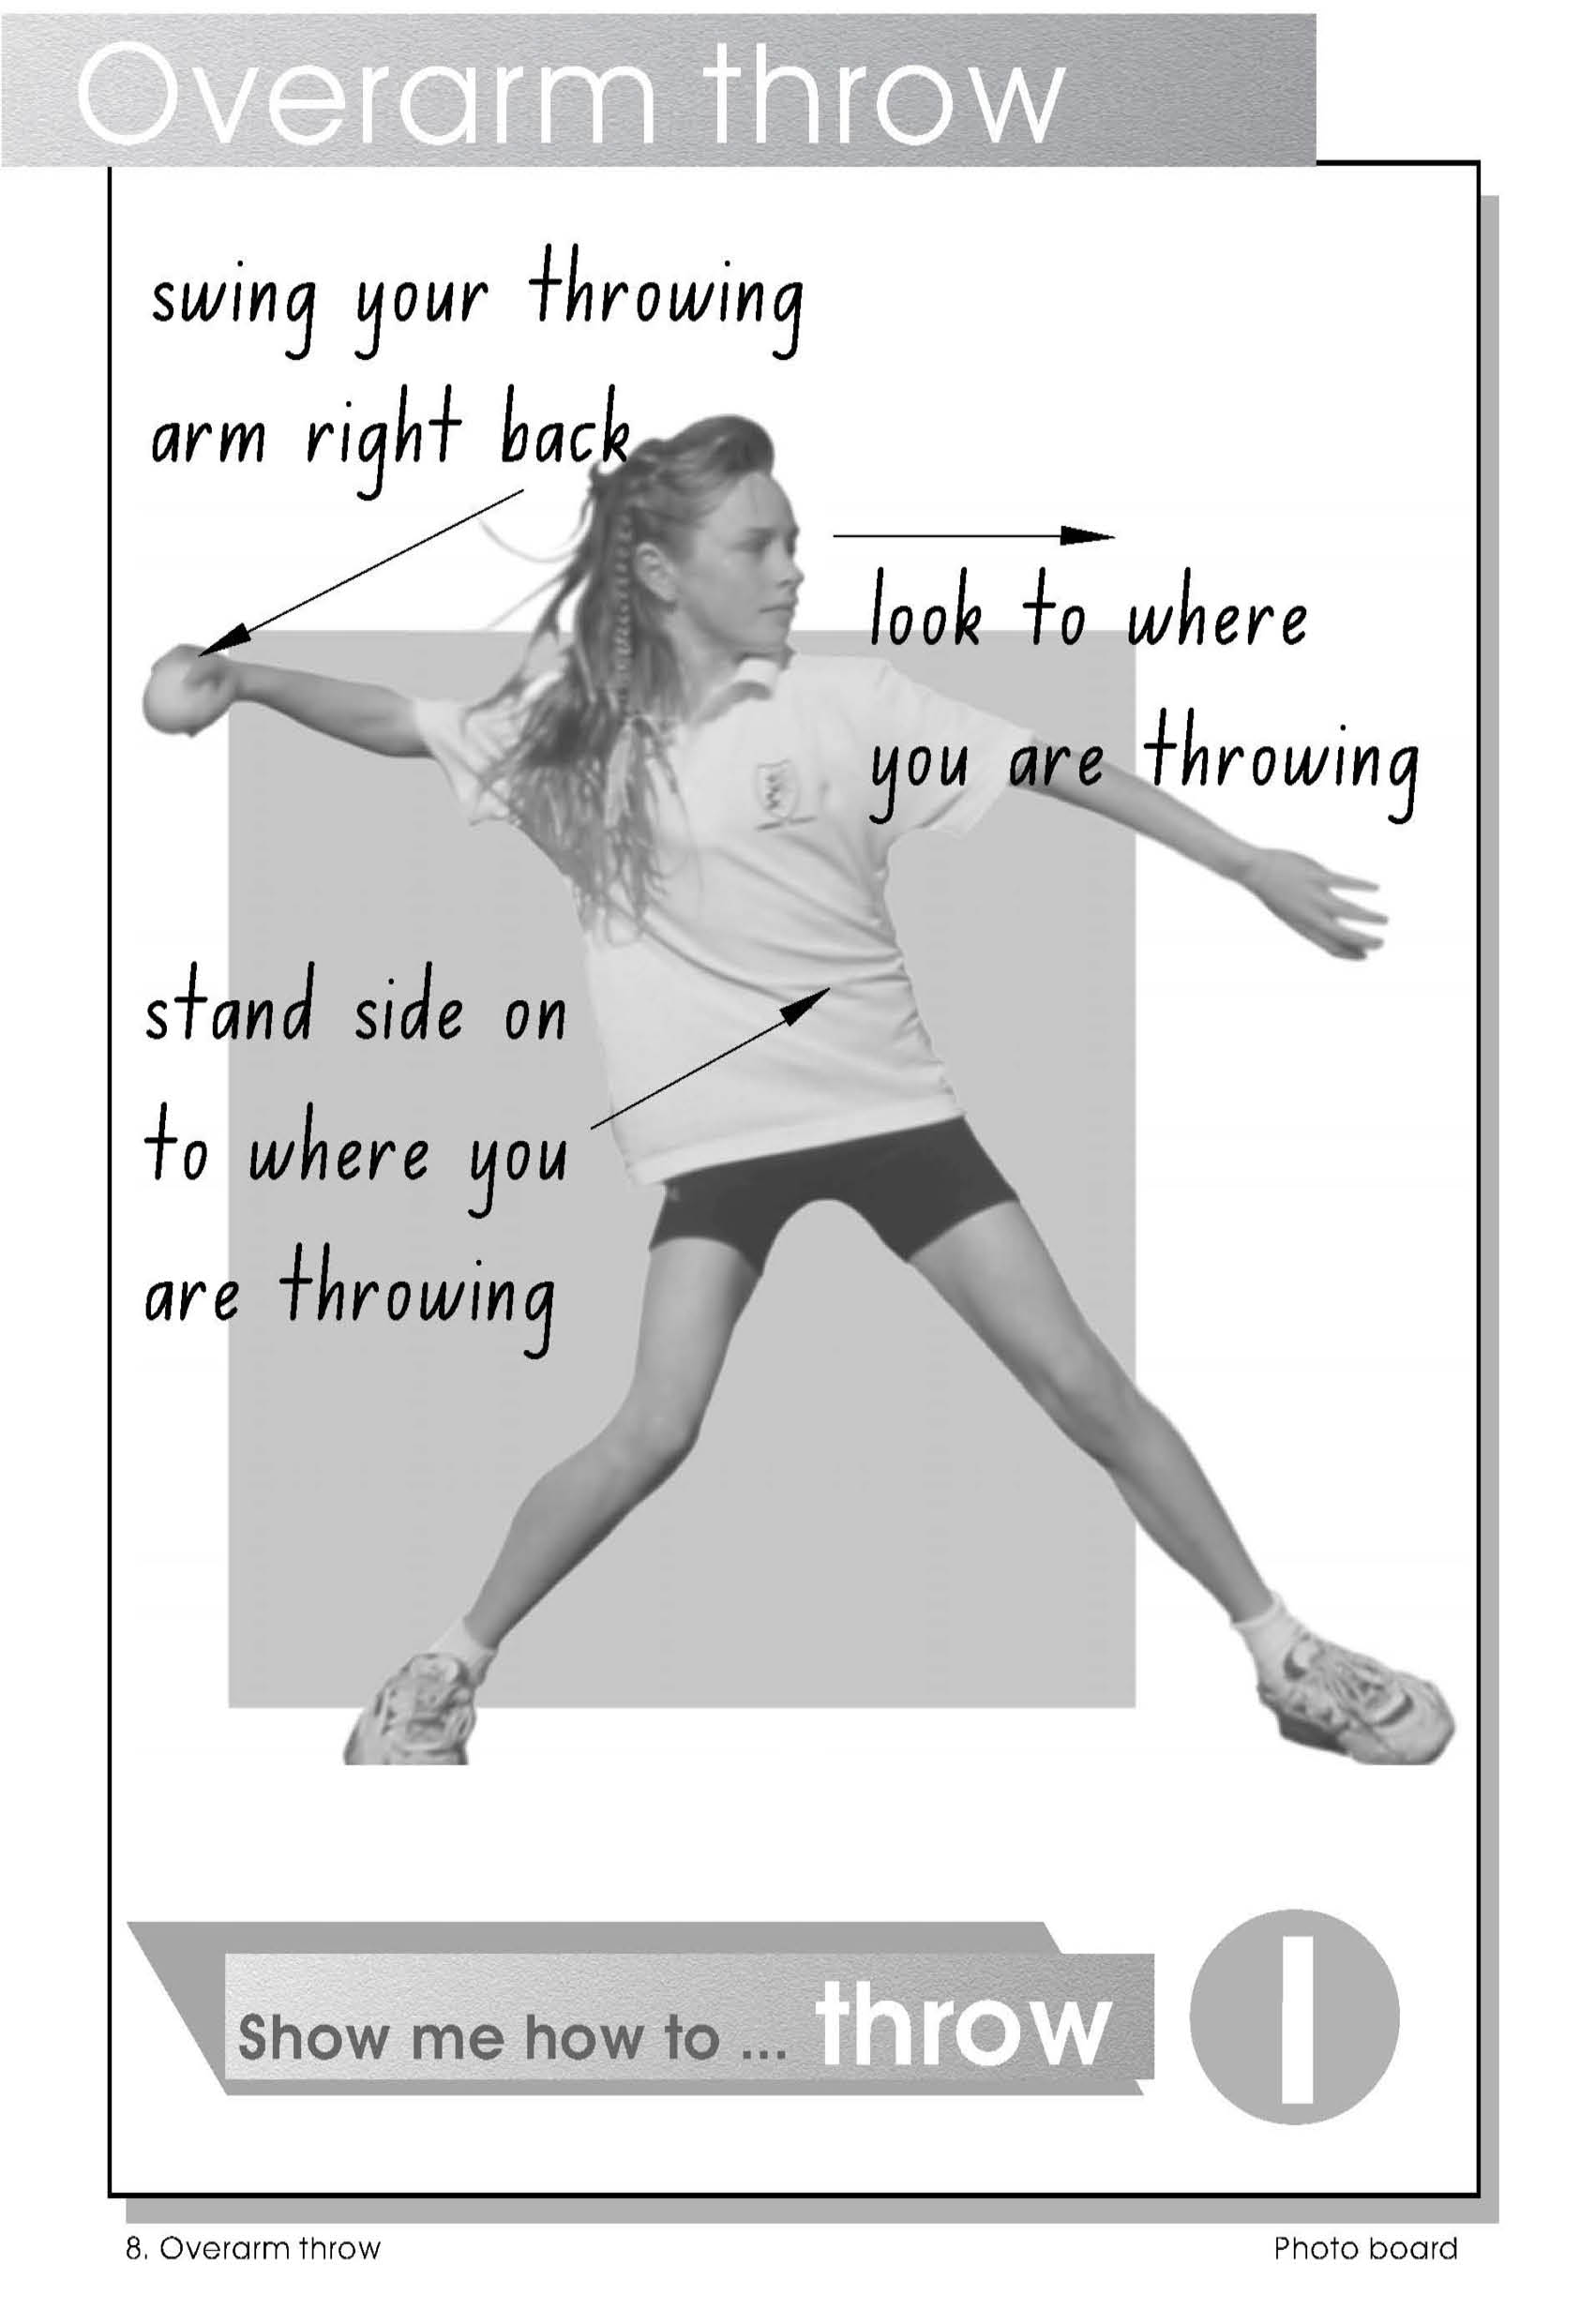 Observational poster - how to overarm throw